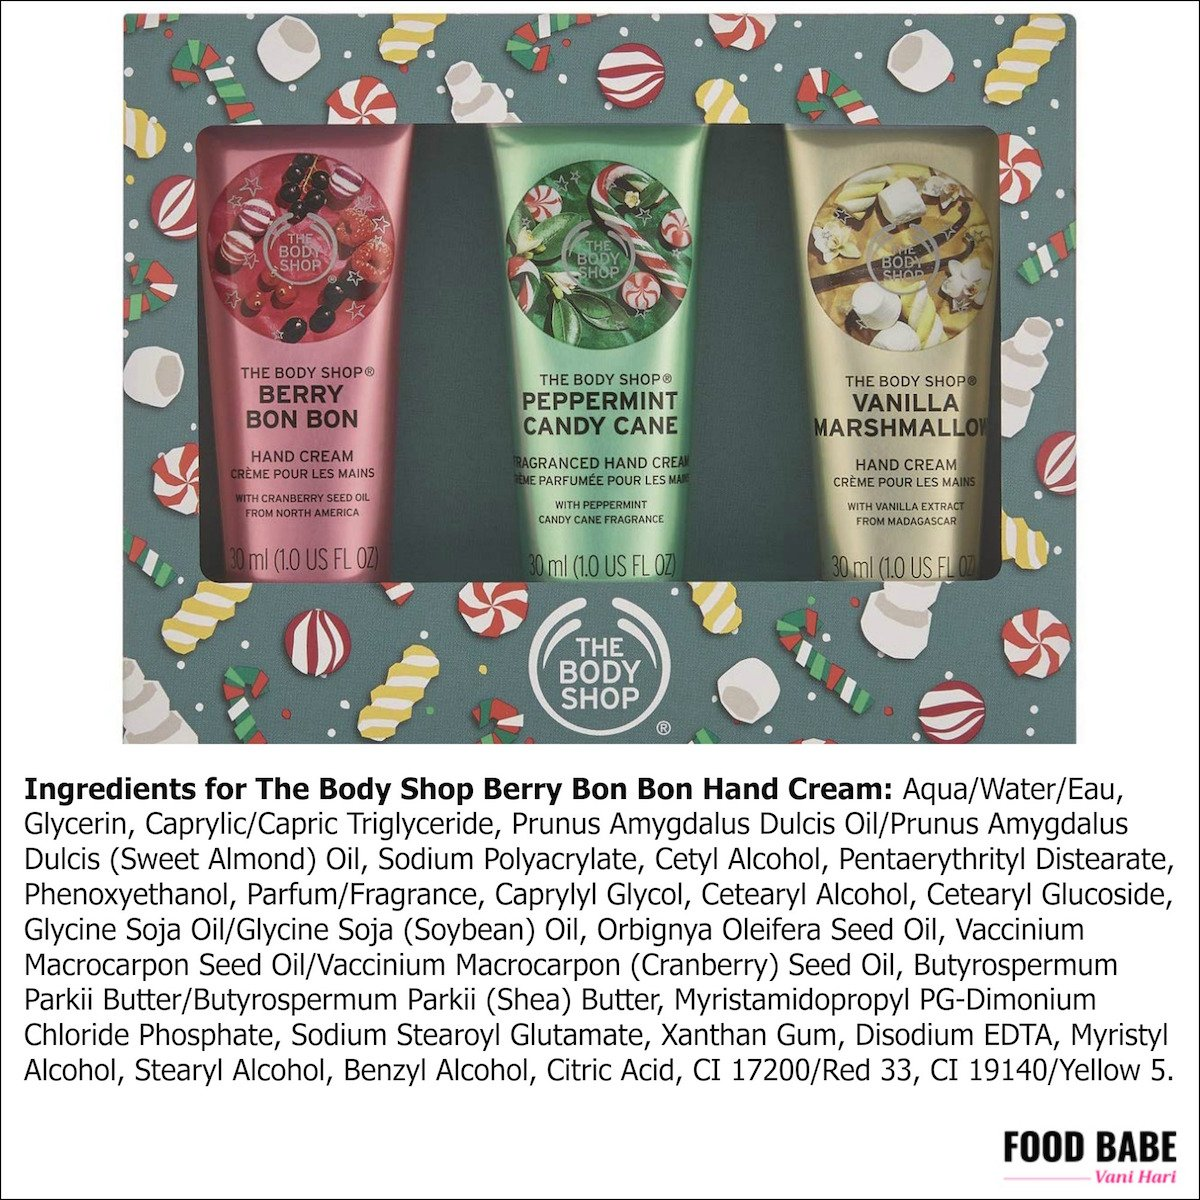 The Body Shop ingredients